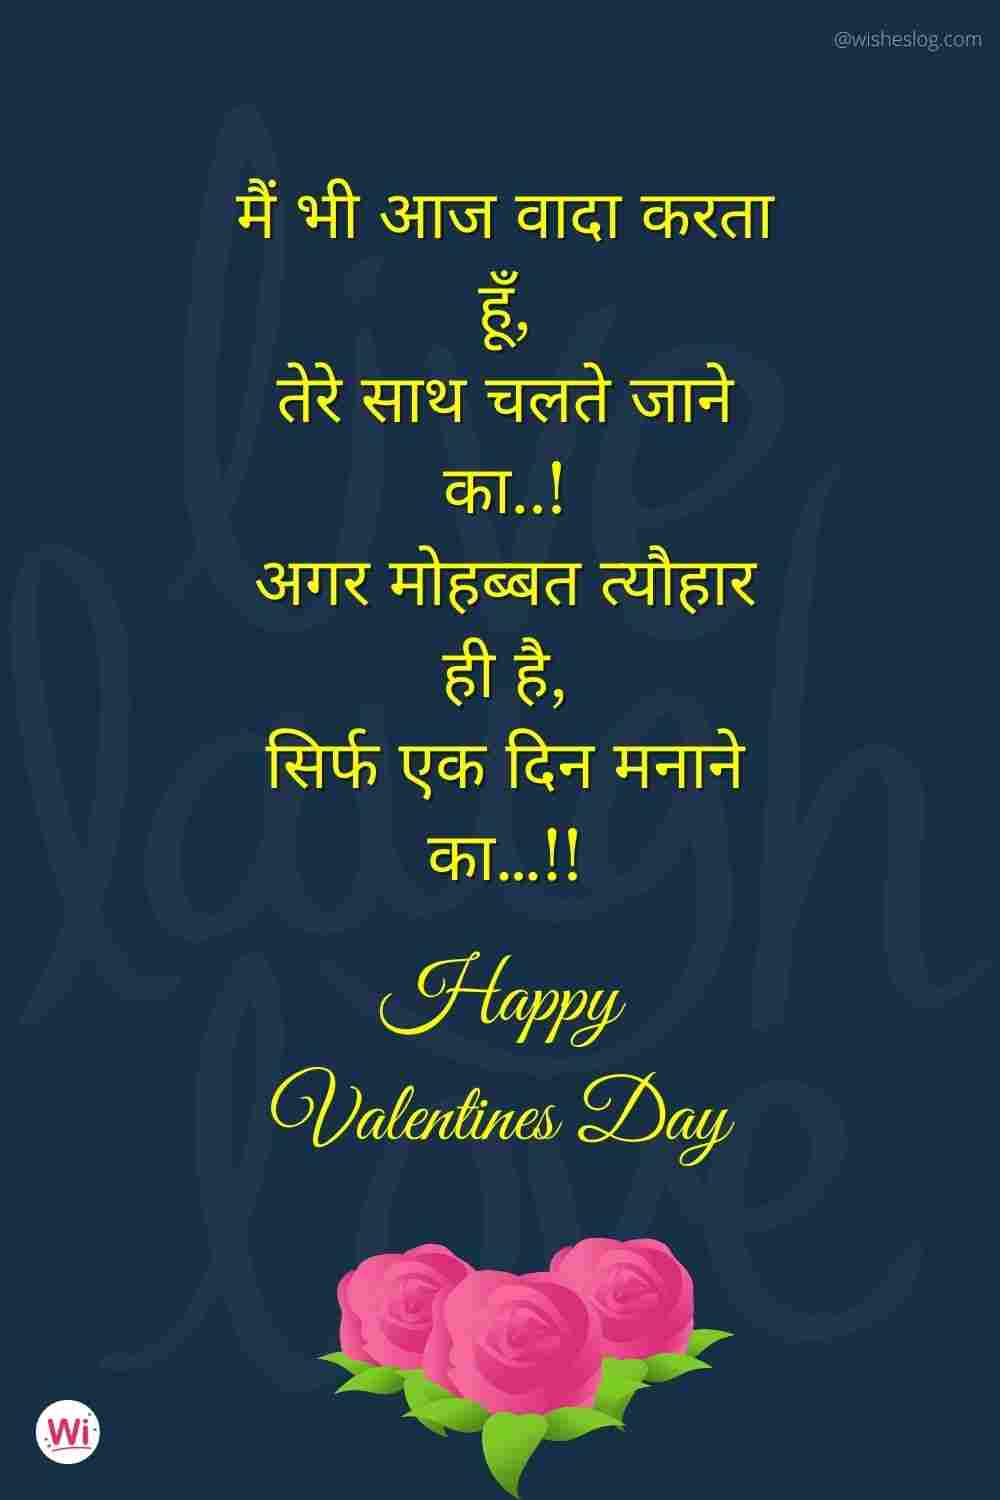 valentine day wishes for wife in hindi